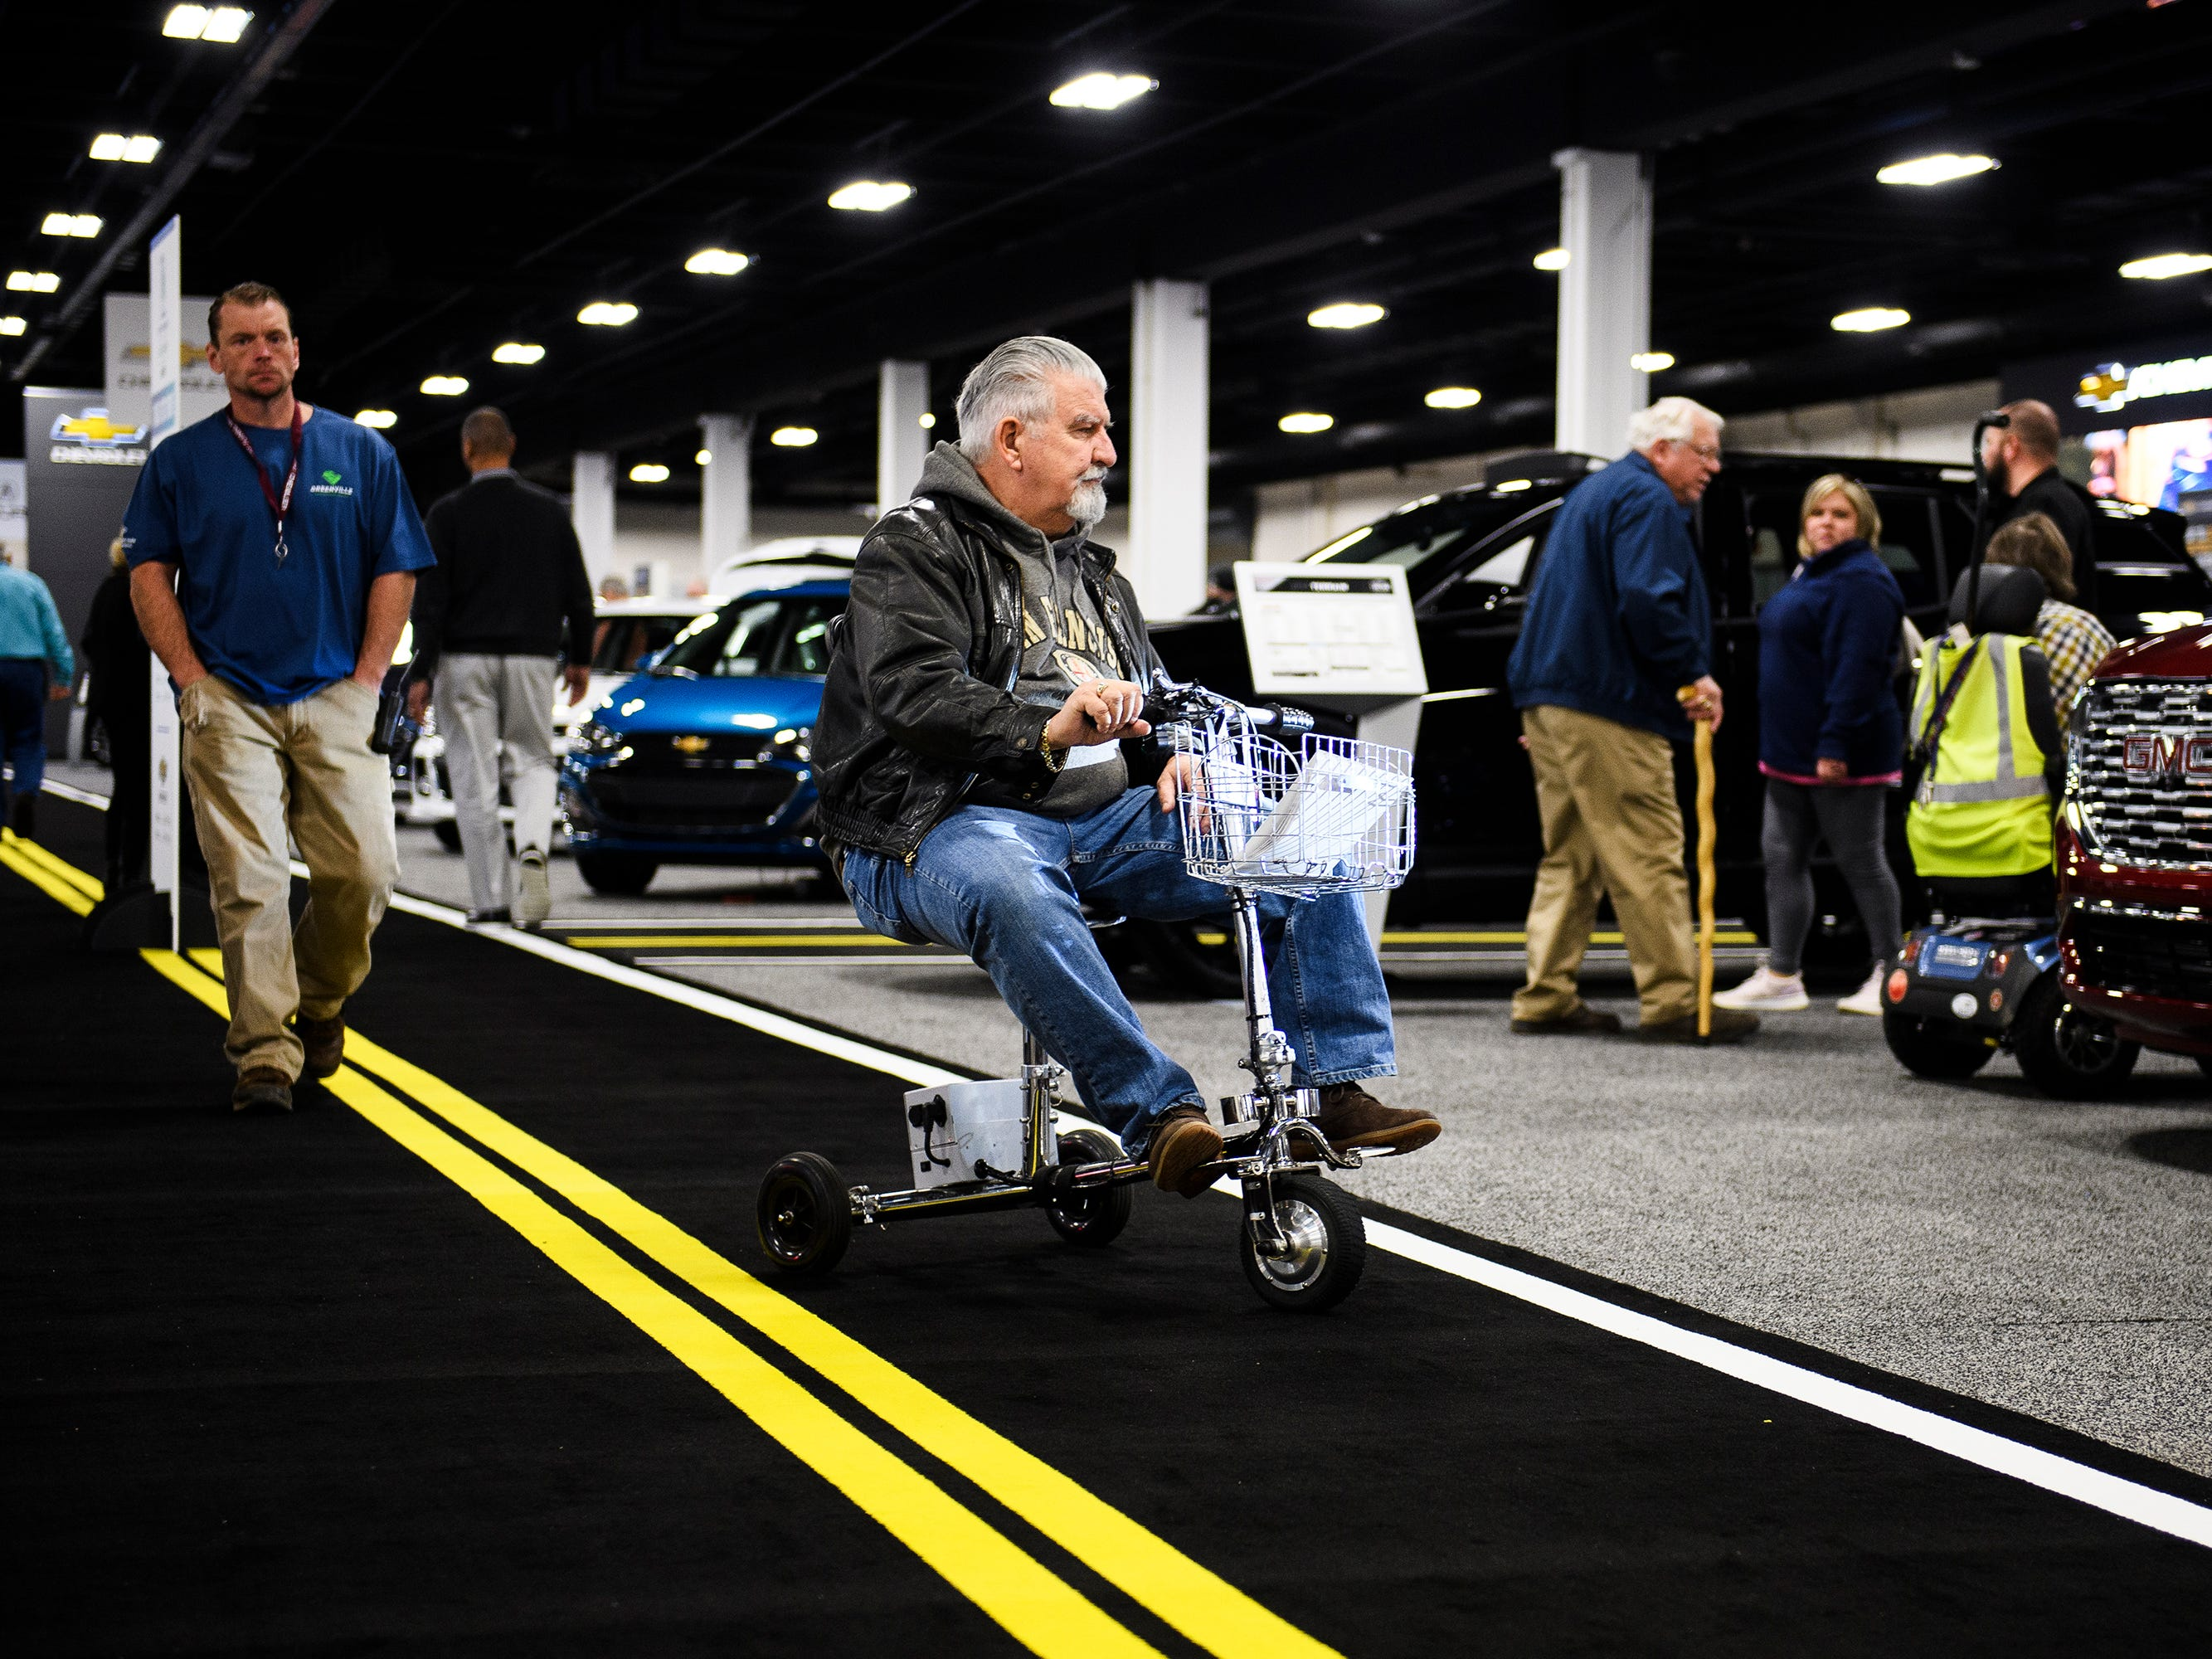 John Lentini rides his scooter down the walkway during the South Carolina International Auto Show Friday, Jan. 11, 2019 at the Greenville Convention Center.